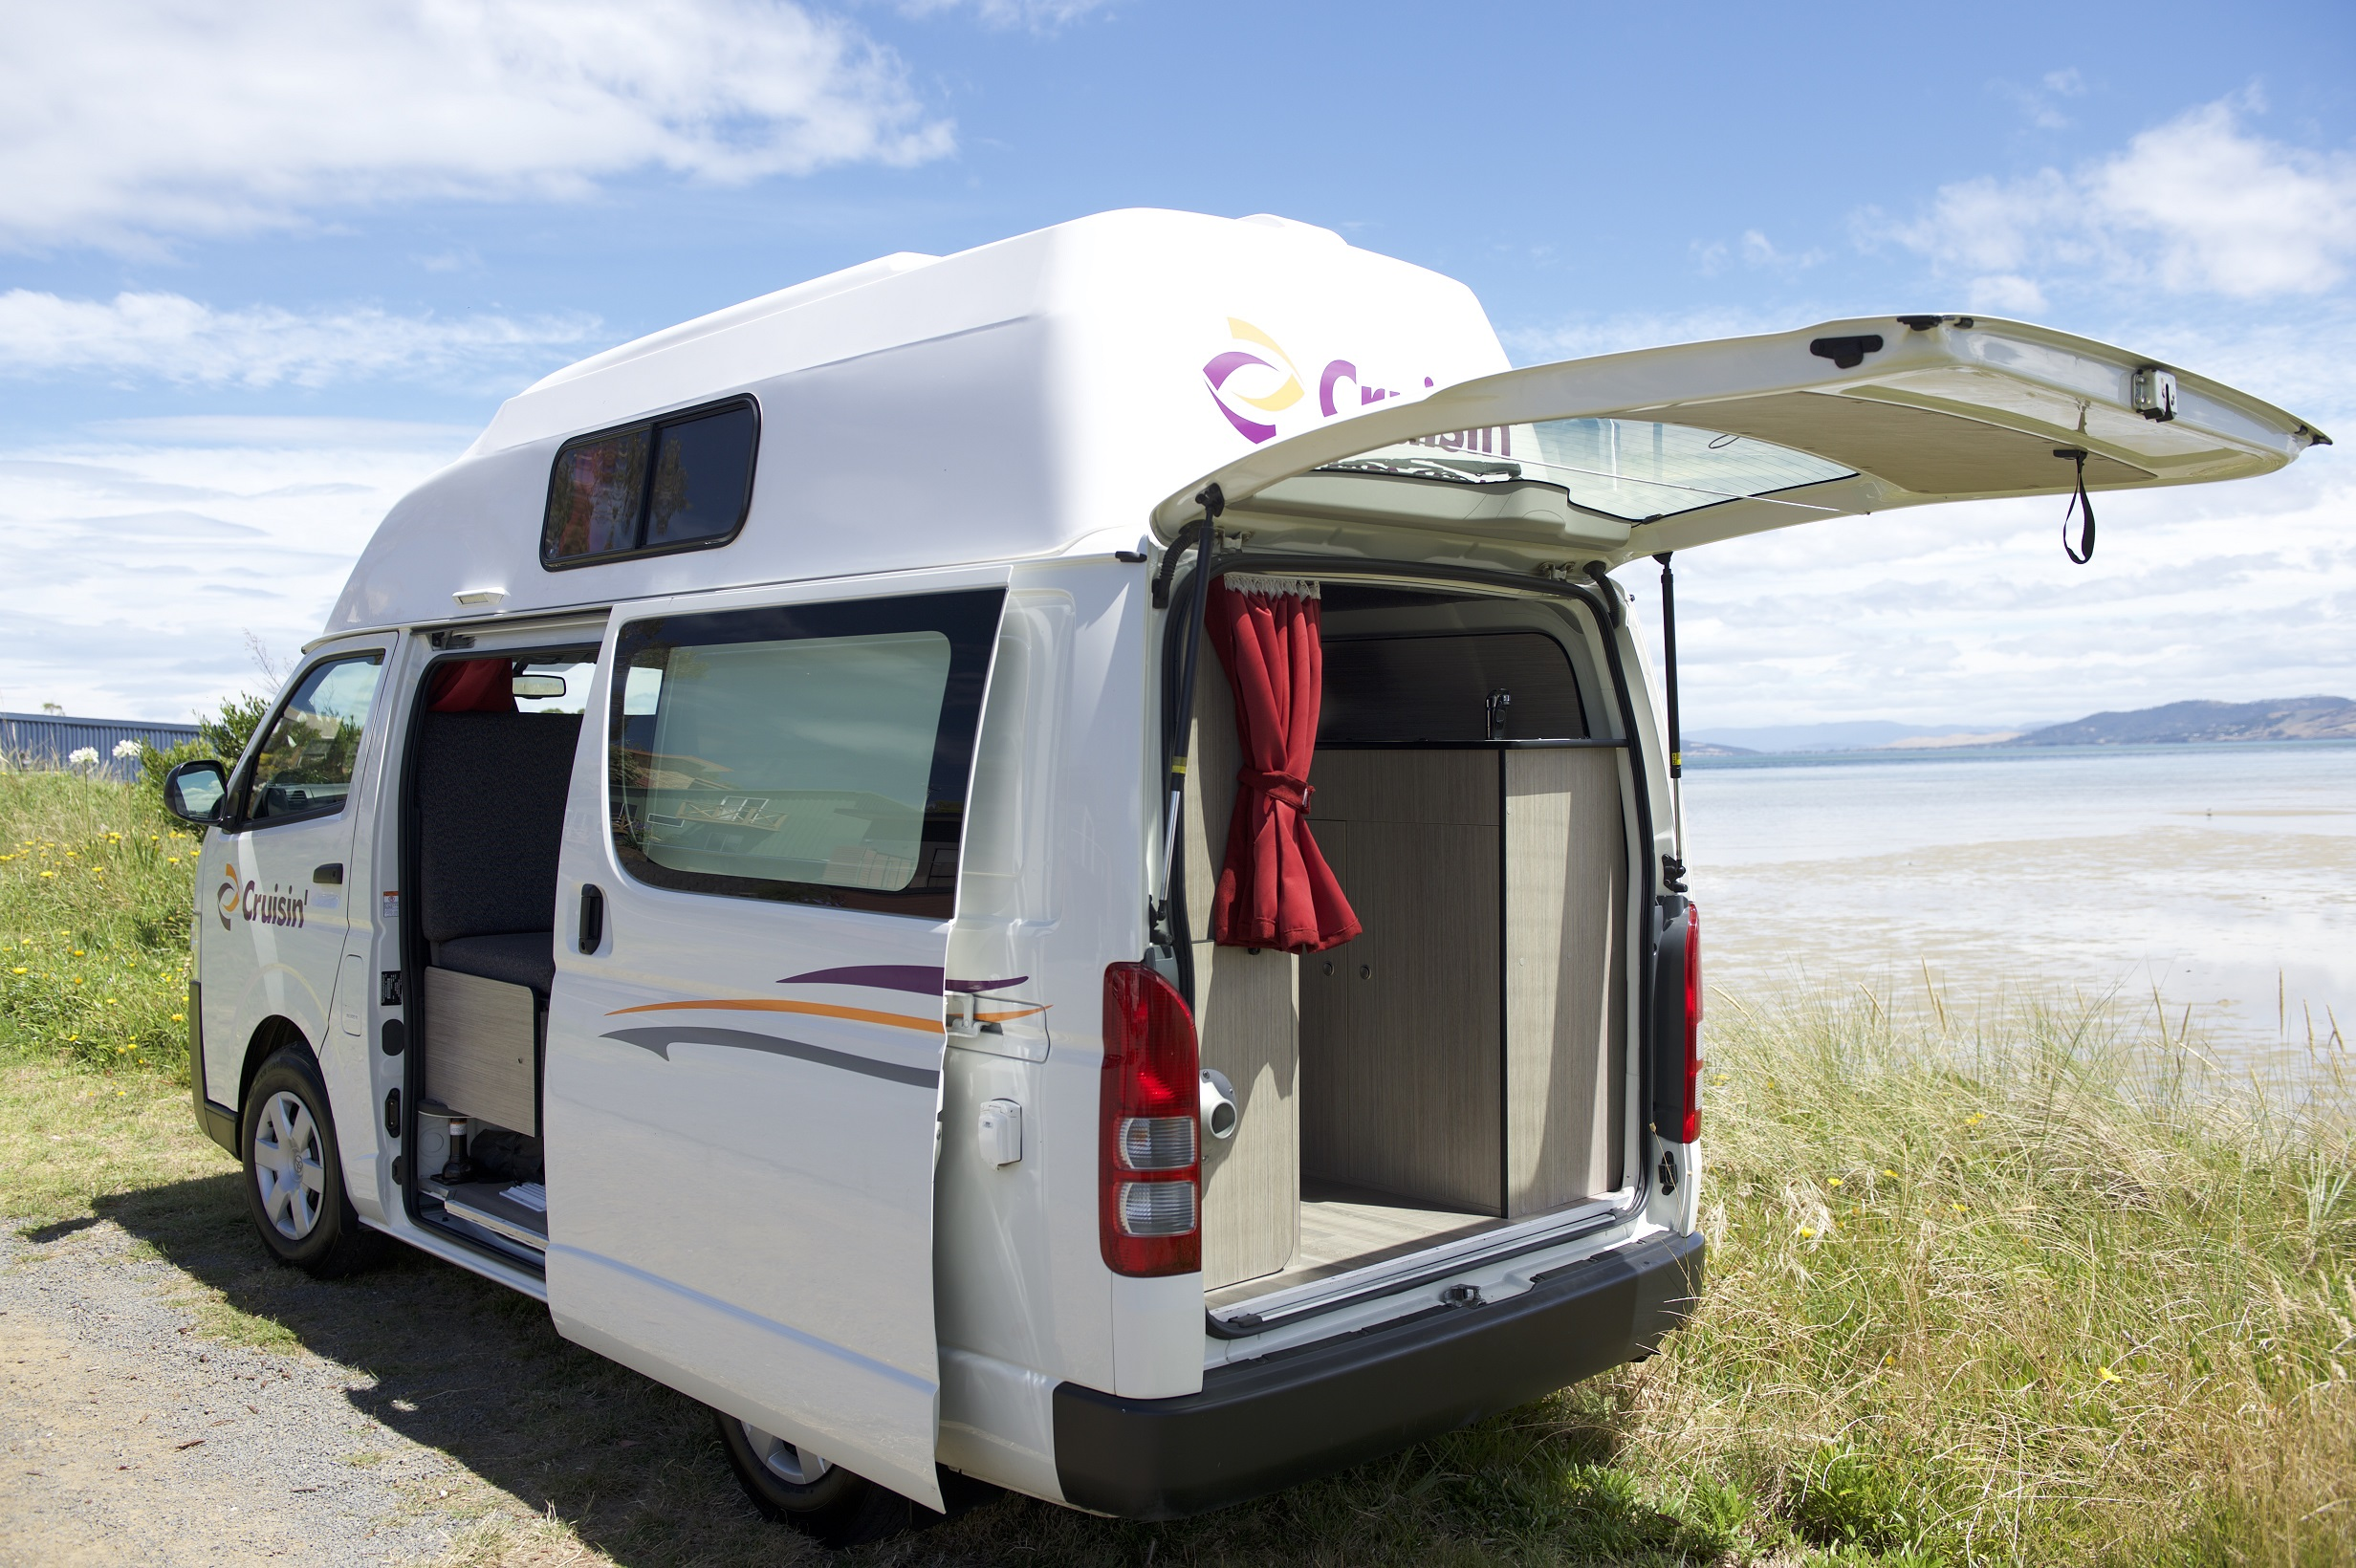 Cruisin Hi-Top 4 Berth Back View - Motorhome Rental Canberra - Campervan Rental Shop